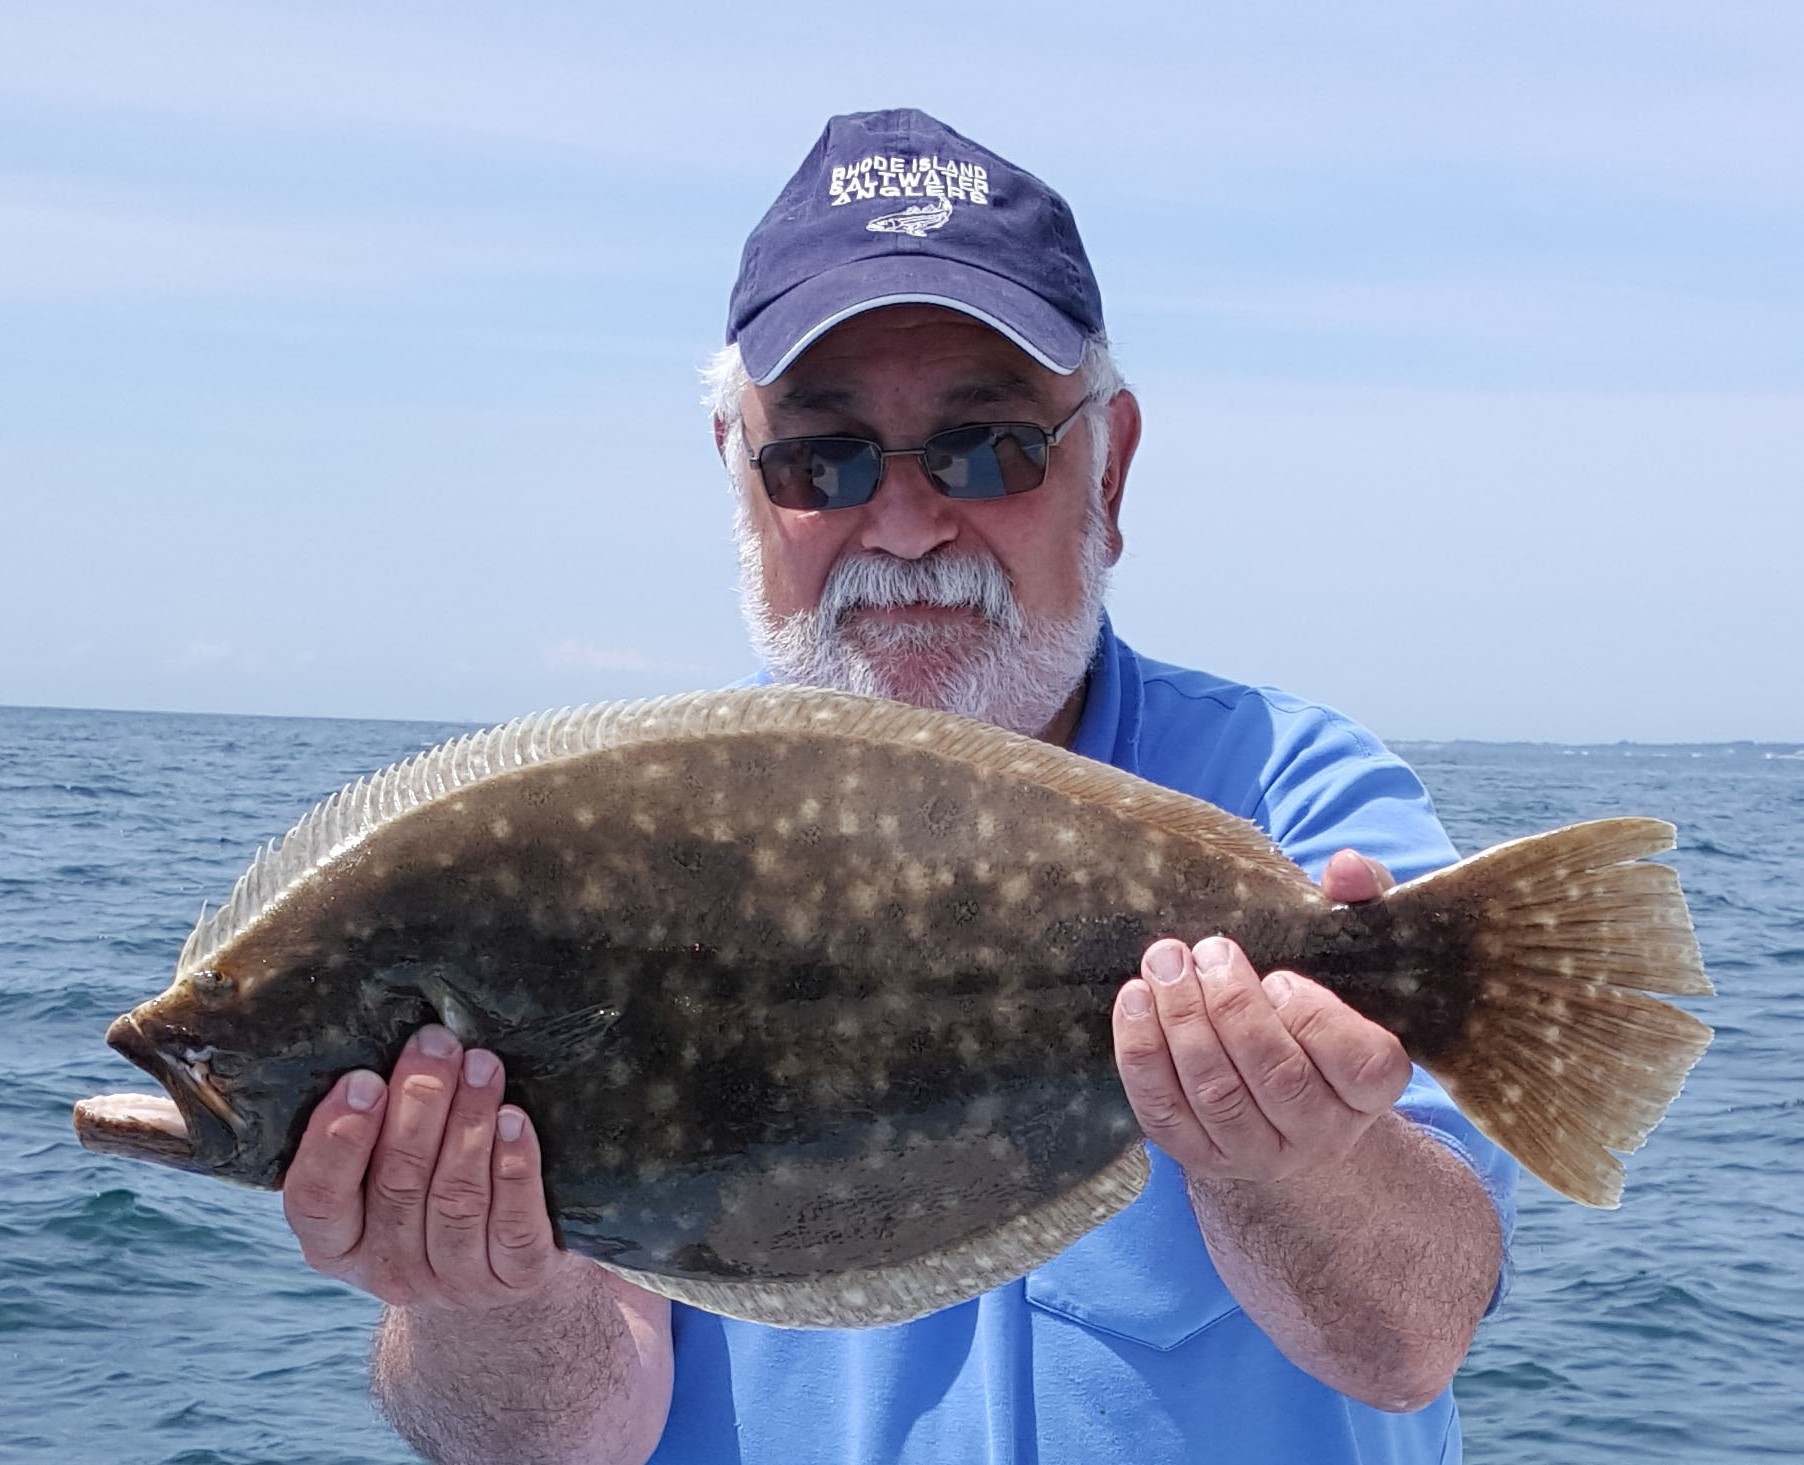 Summer flounder testing our resolve marine fish for Rhode island saltwater fishing regulations